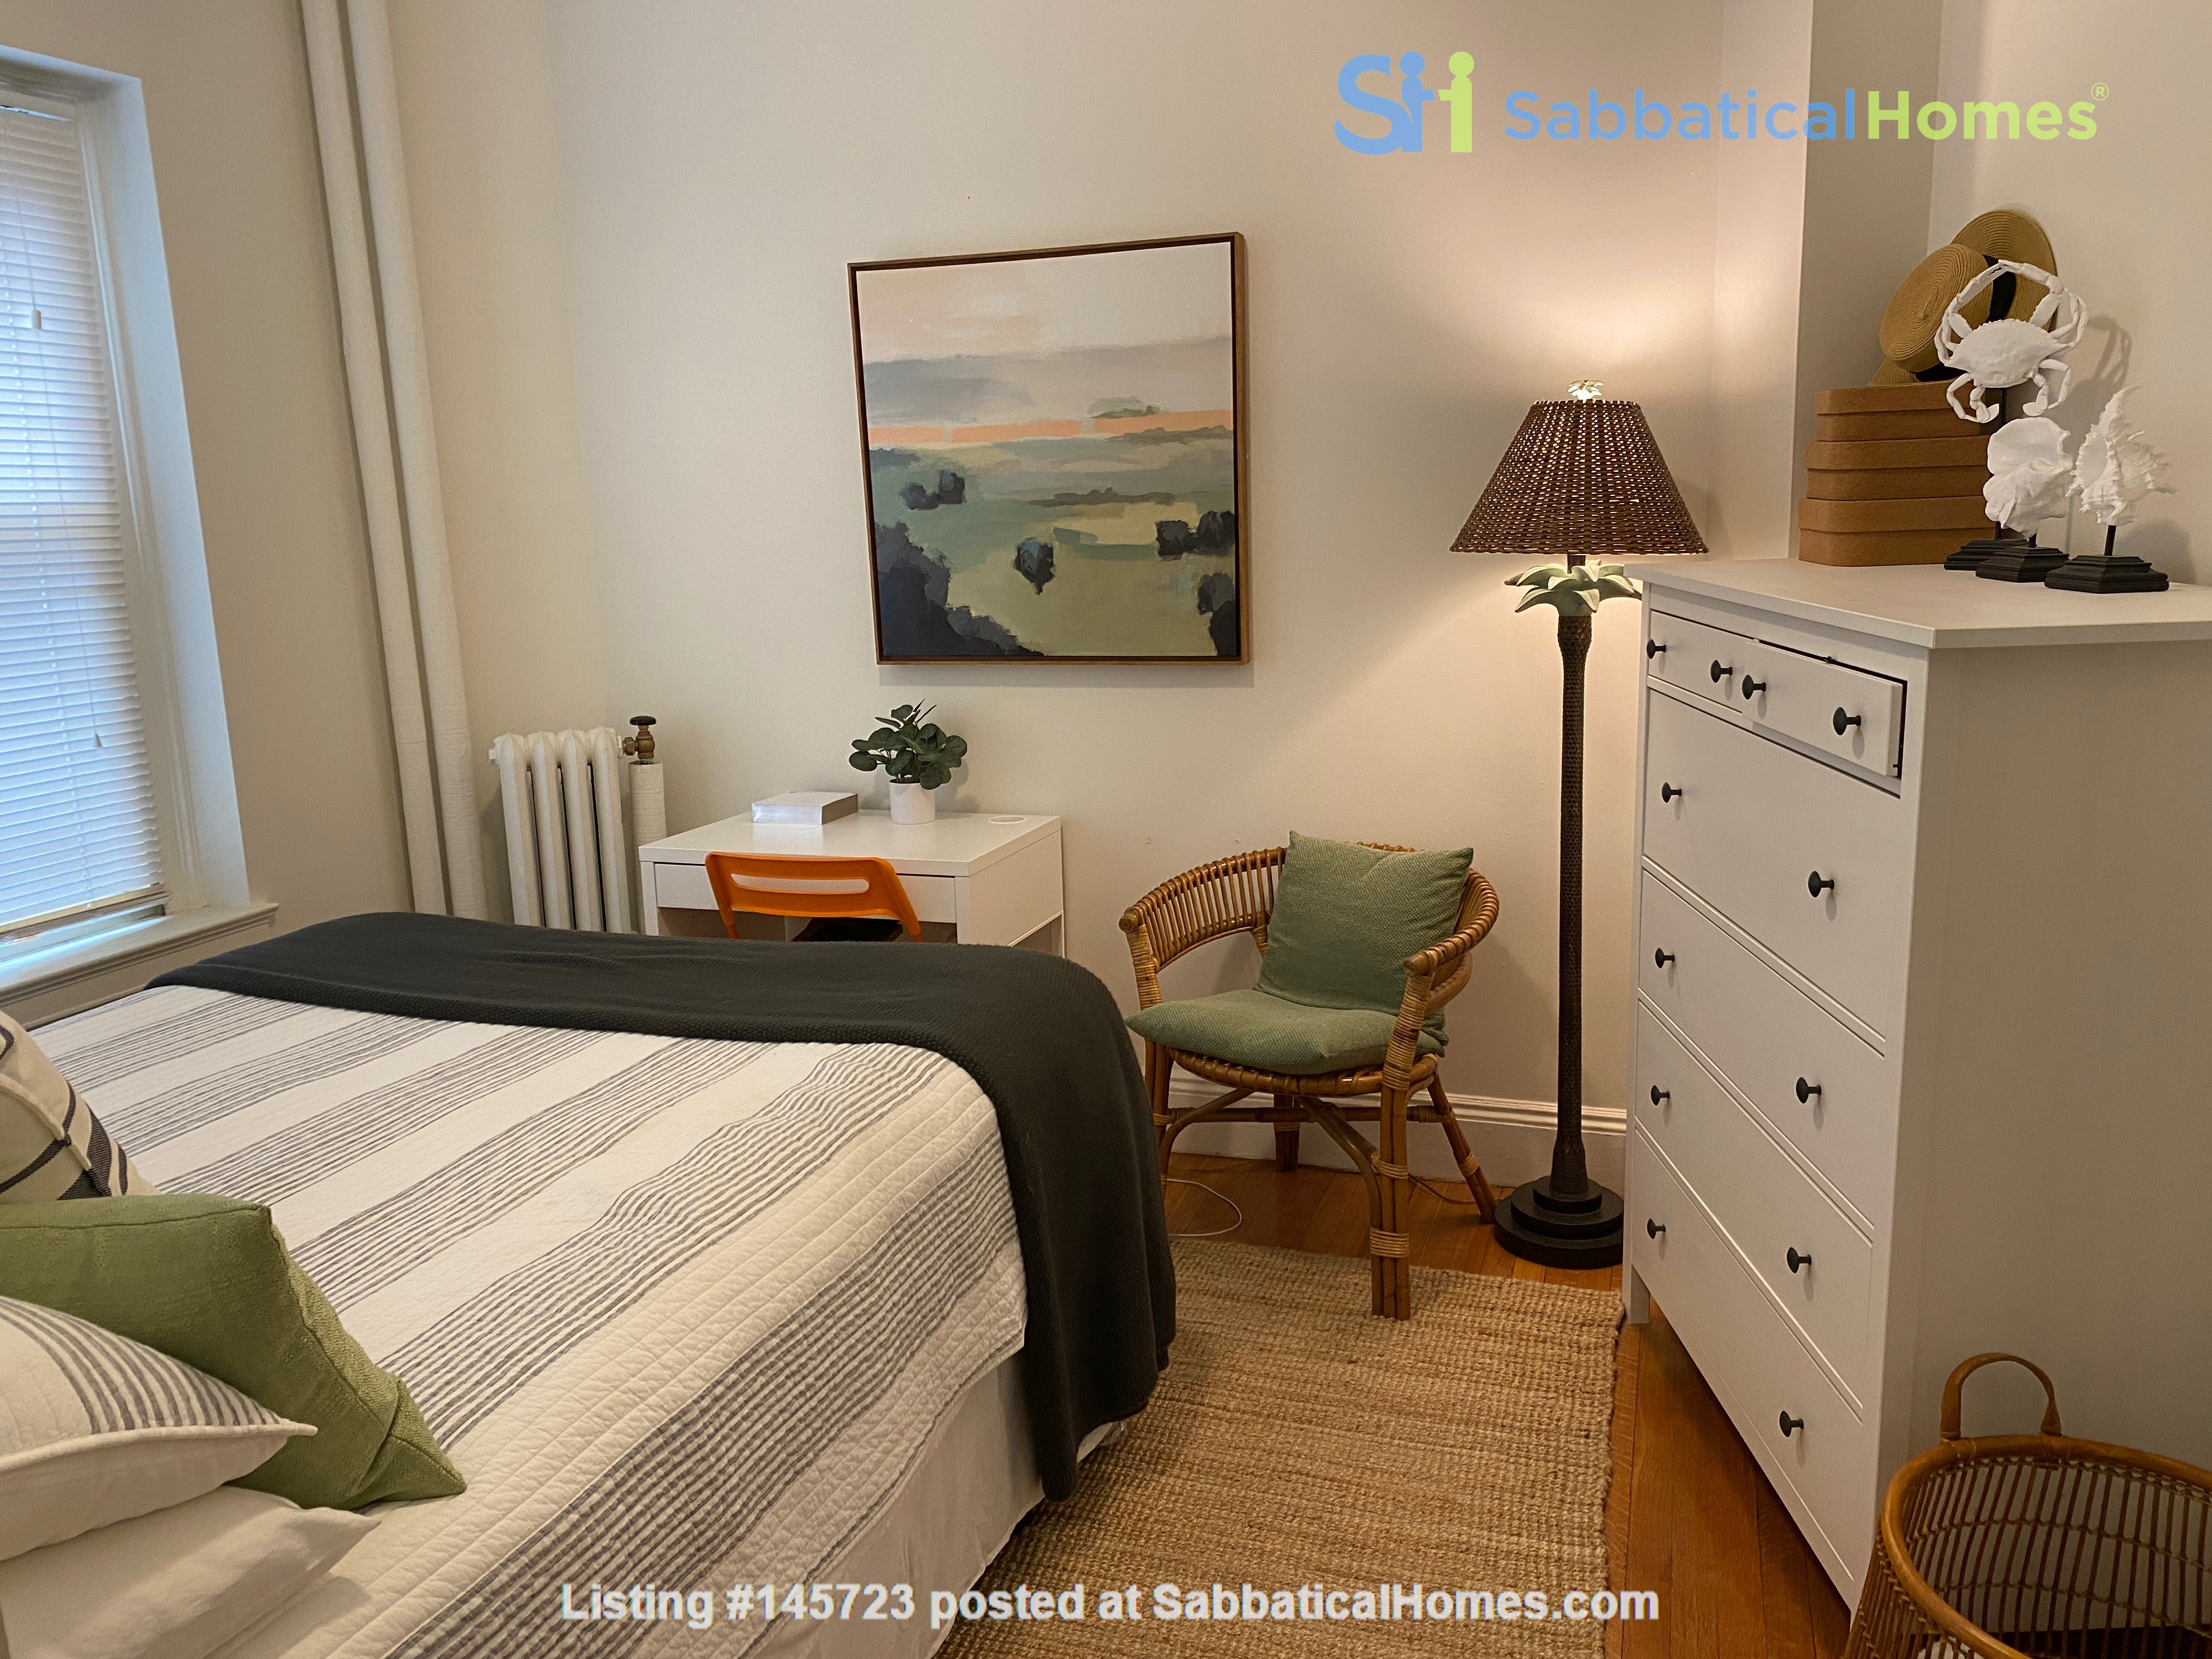 For Rent: A wonderful apartment in the heart of Harvard Square! Home Rental in Cambridge, Massachusetts, United States 6